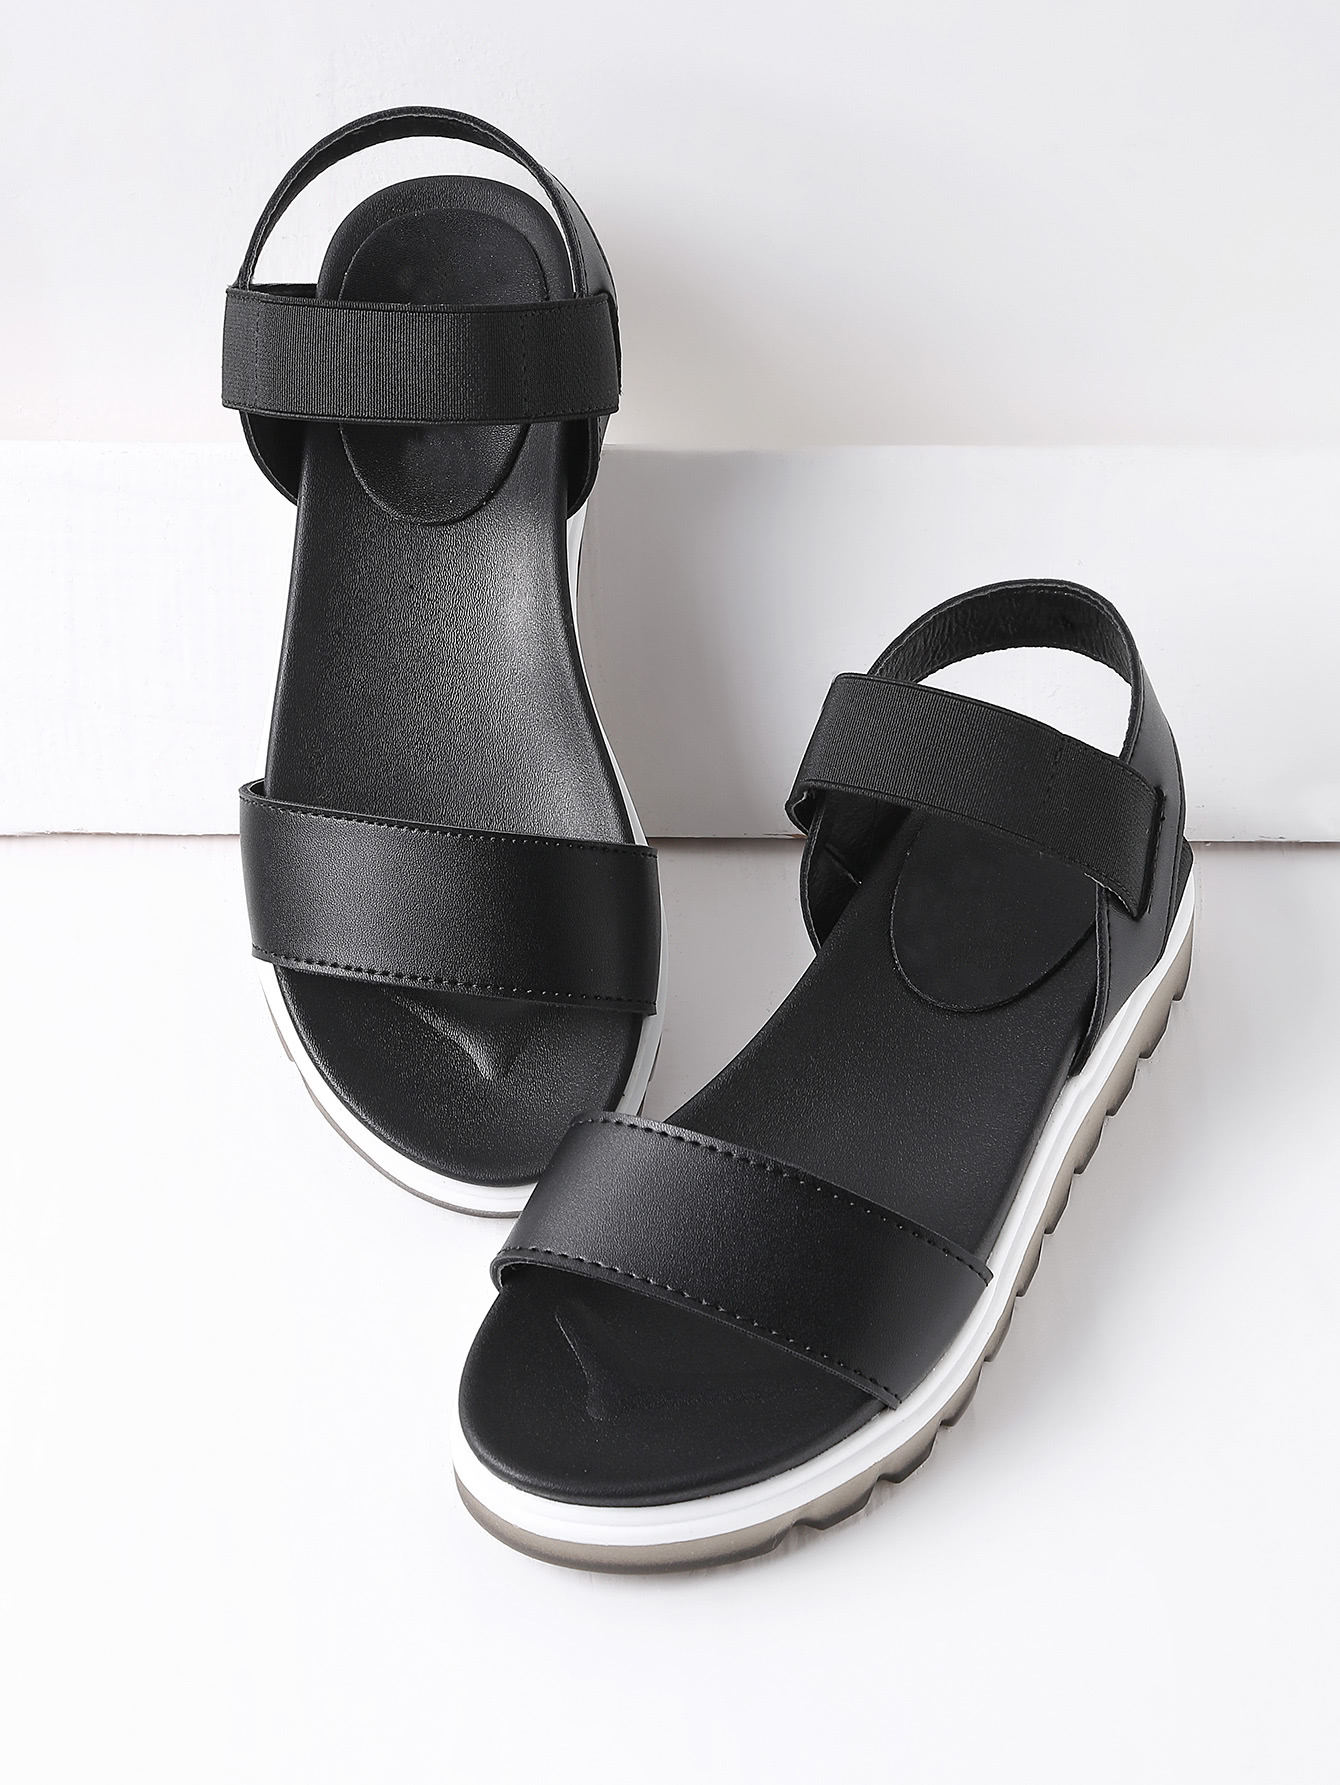 Image of Black Contrast Sole Flatform Sandals